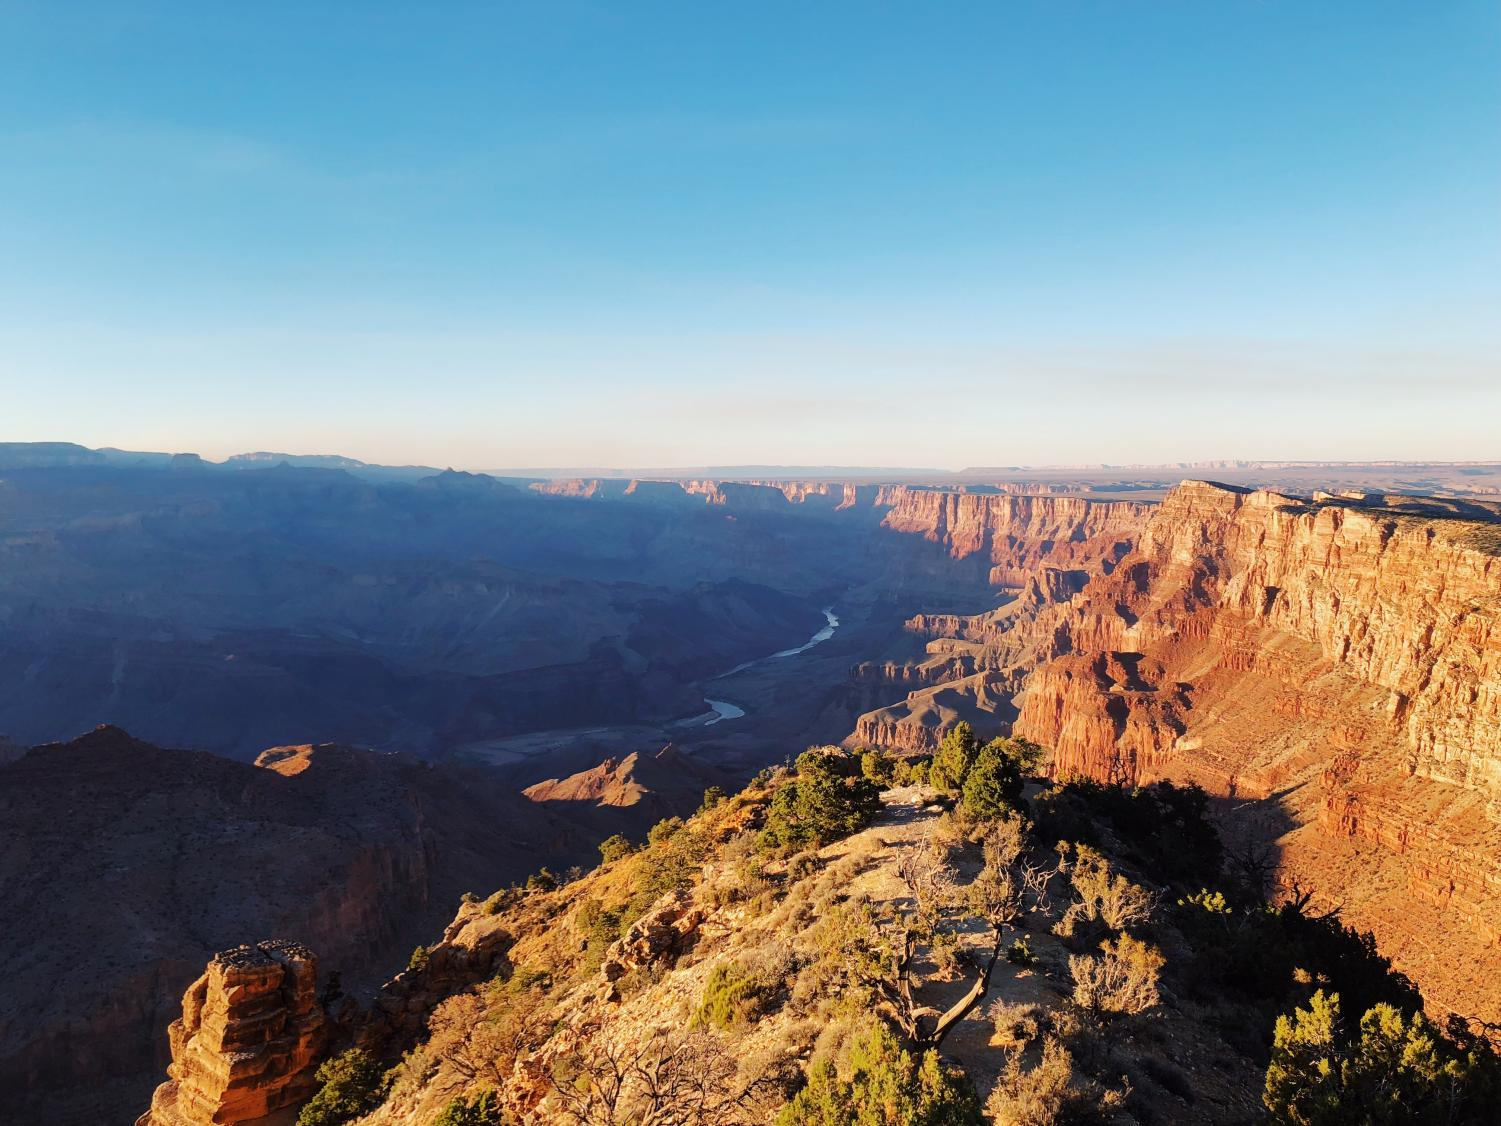 Marvels+of+nature.+One+of+the+United+States%27+most+beautiful+wonders+is+the+Grand+Canyon.+Spanning+227+miles+long%2C+the+Canyon+is+considered+one+of+the+seven+wonders+of+the+natural+world.+